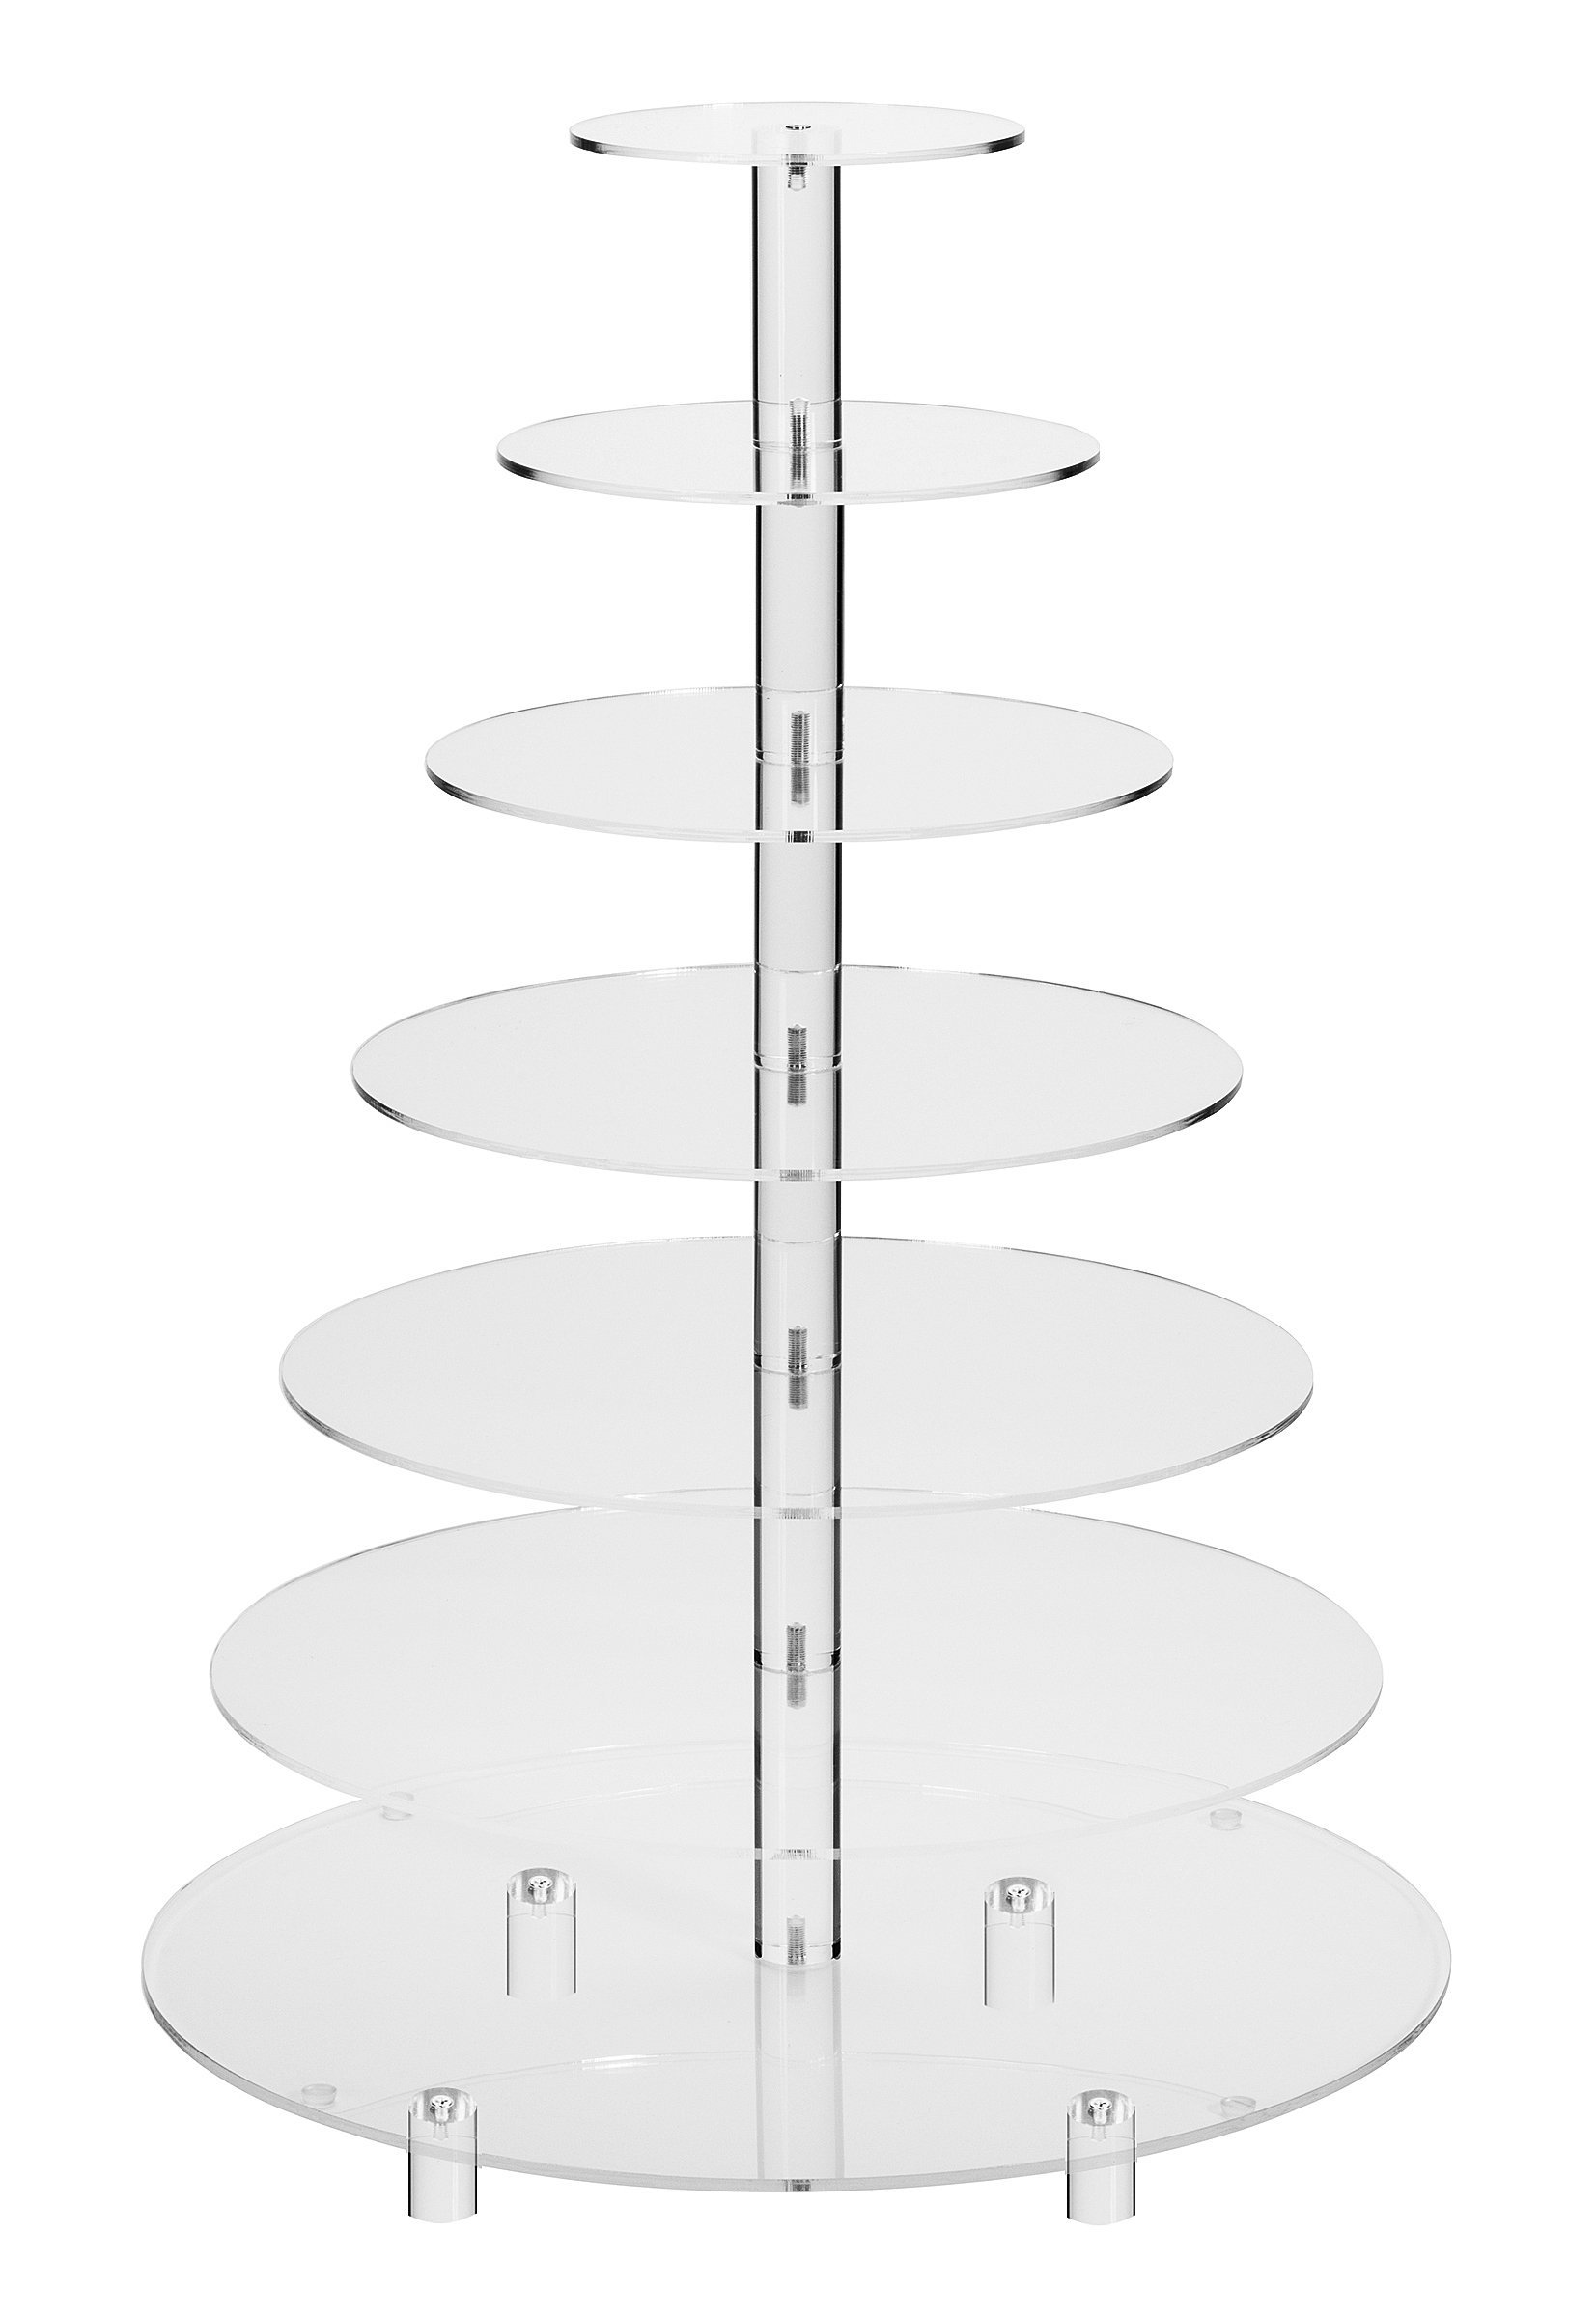 Jusalpha 7 Tier Round Acrylic Glass Cupcake Stand-cake stand-dessert stand, cupcake Tower 7 Tier With Base (7RF-Small) by Jusalpha